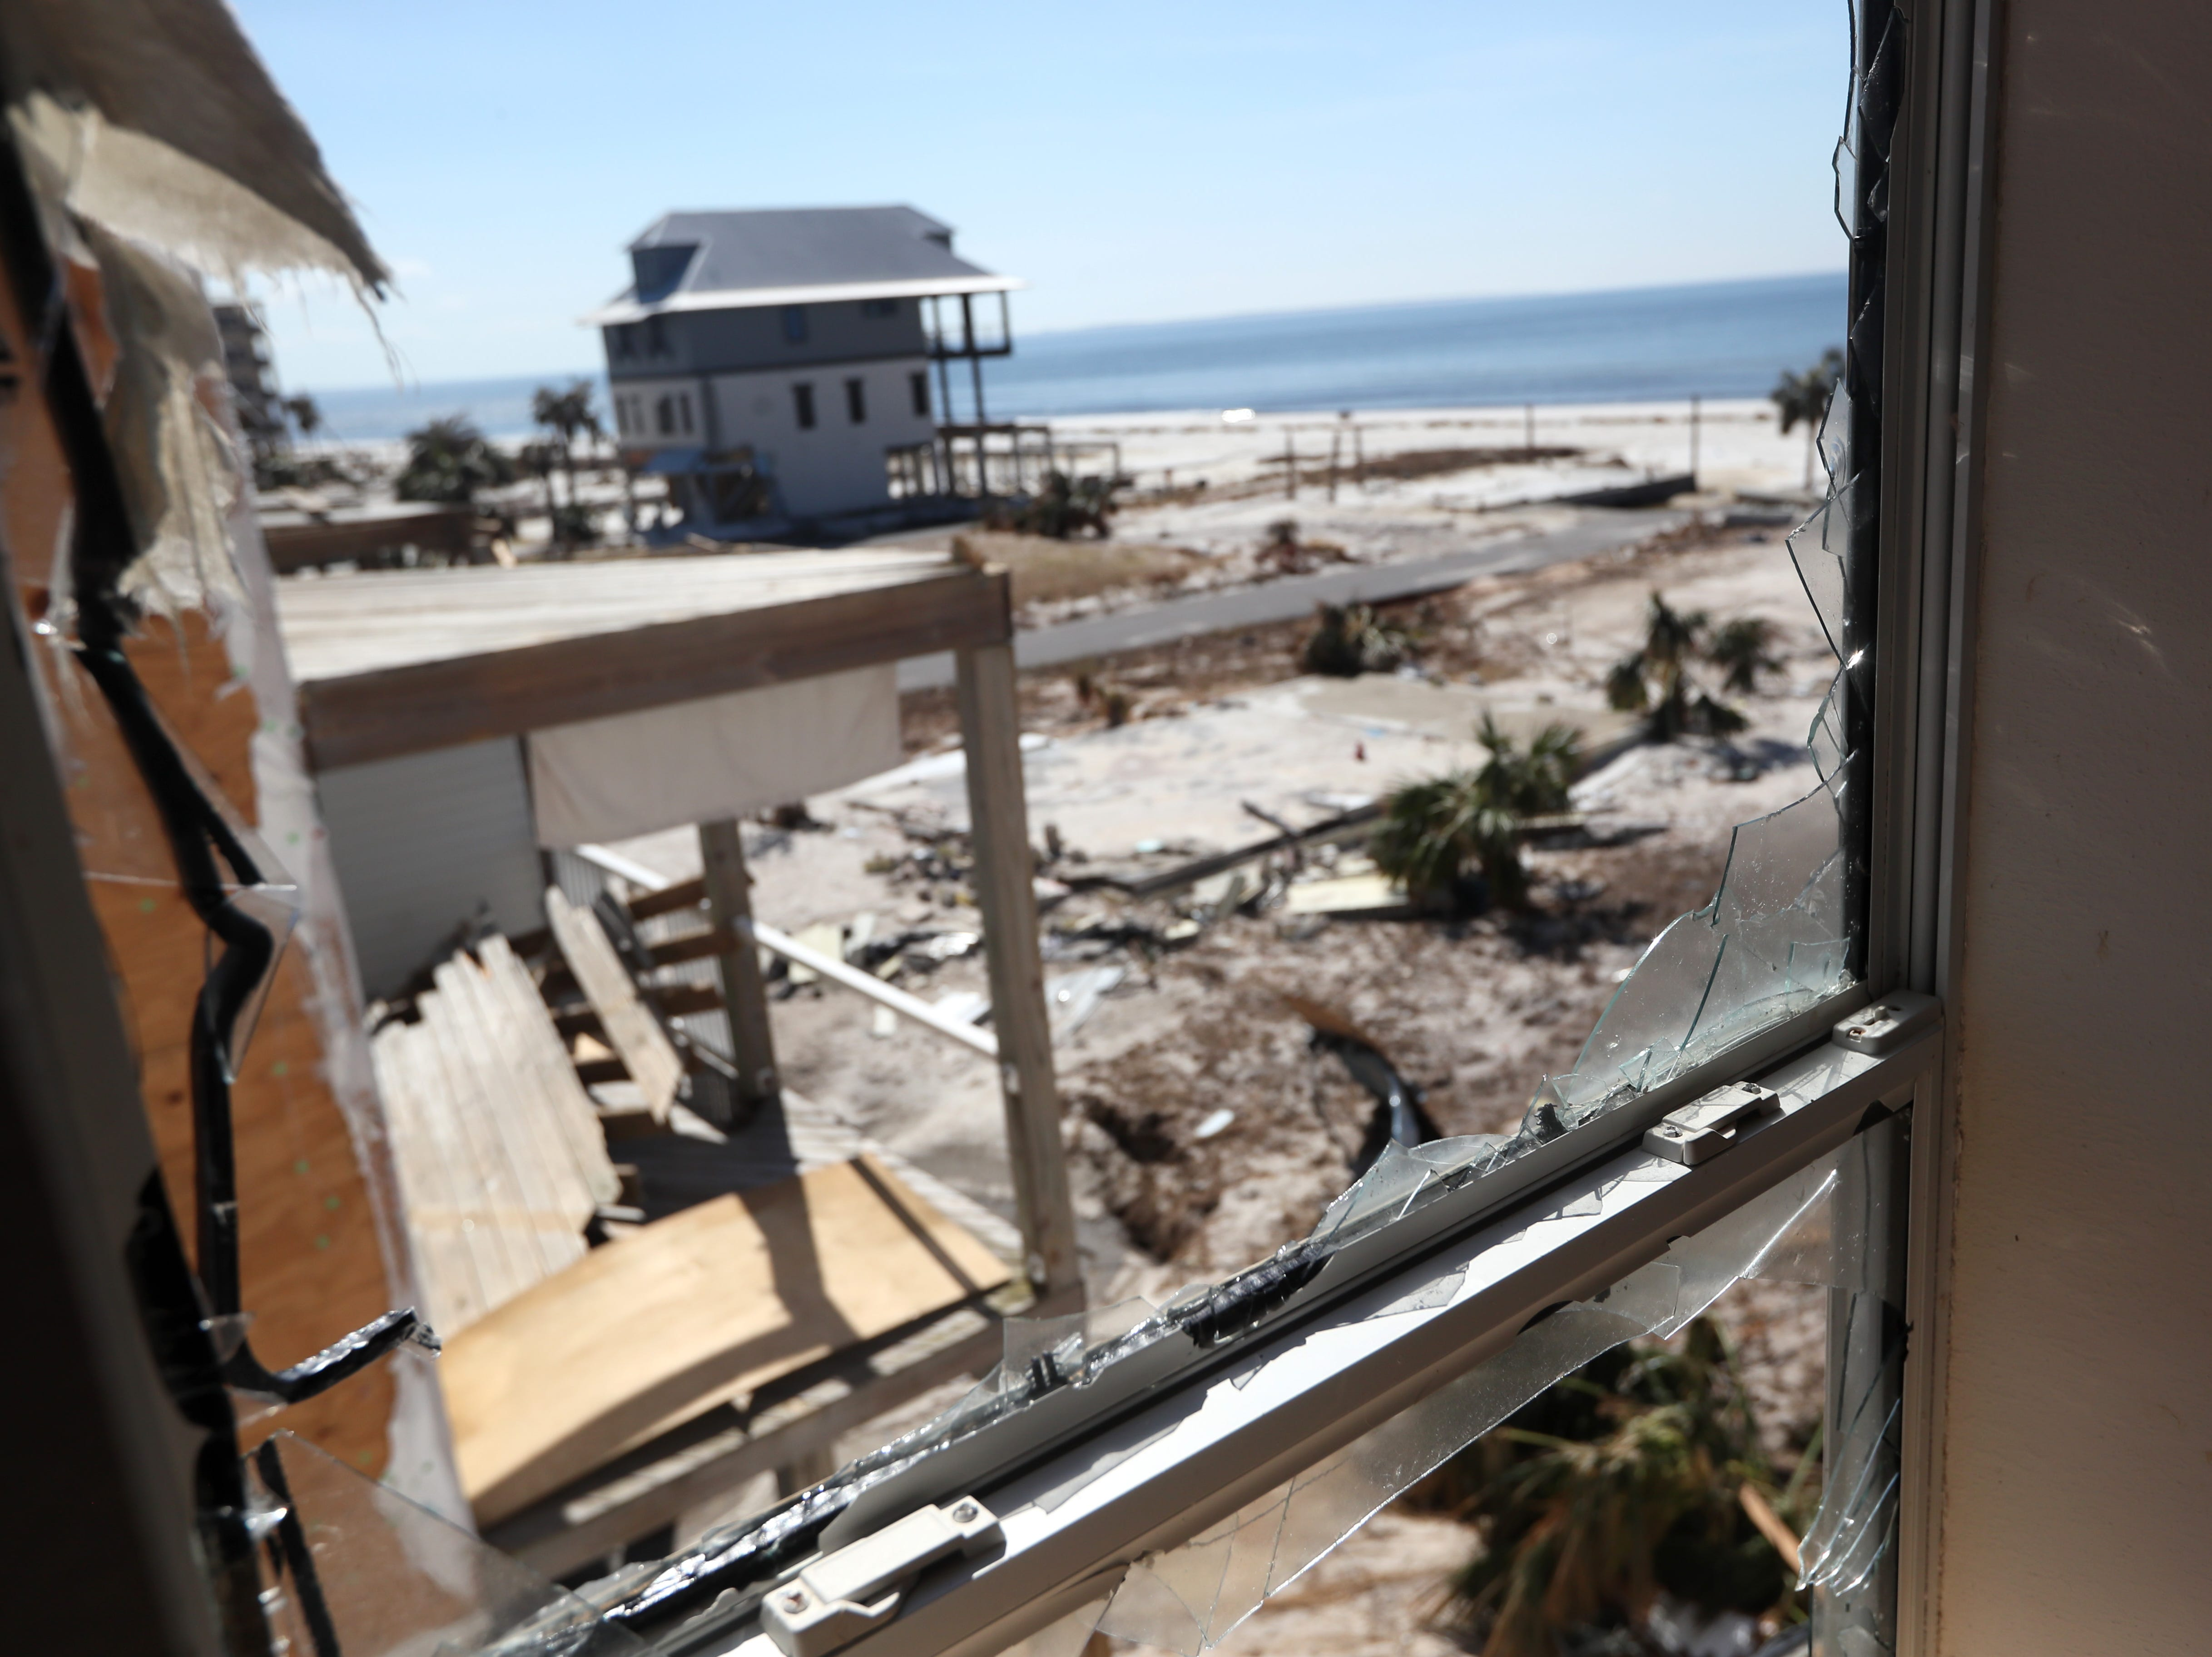 A wind-damaged beach front can be seen through a broken window in the Higdon family condo in Mexico Beach on Wednesday, Oct. 17, 2018, one week after Hurricane Michael ripped through the coastal Florida town.